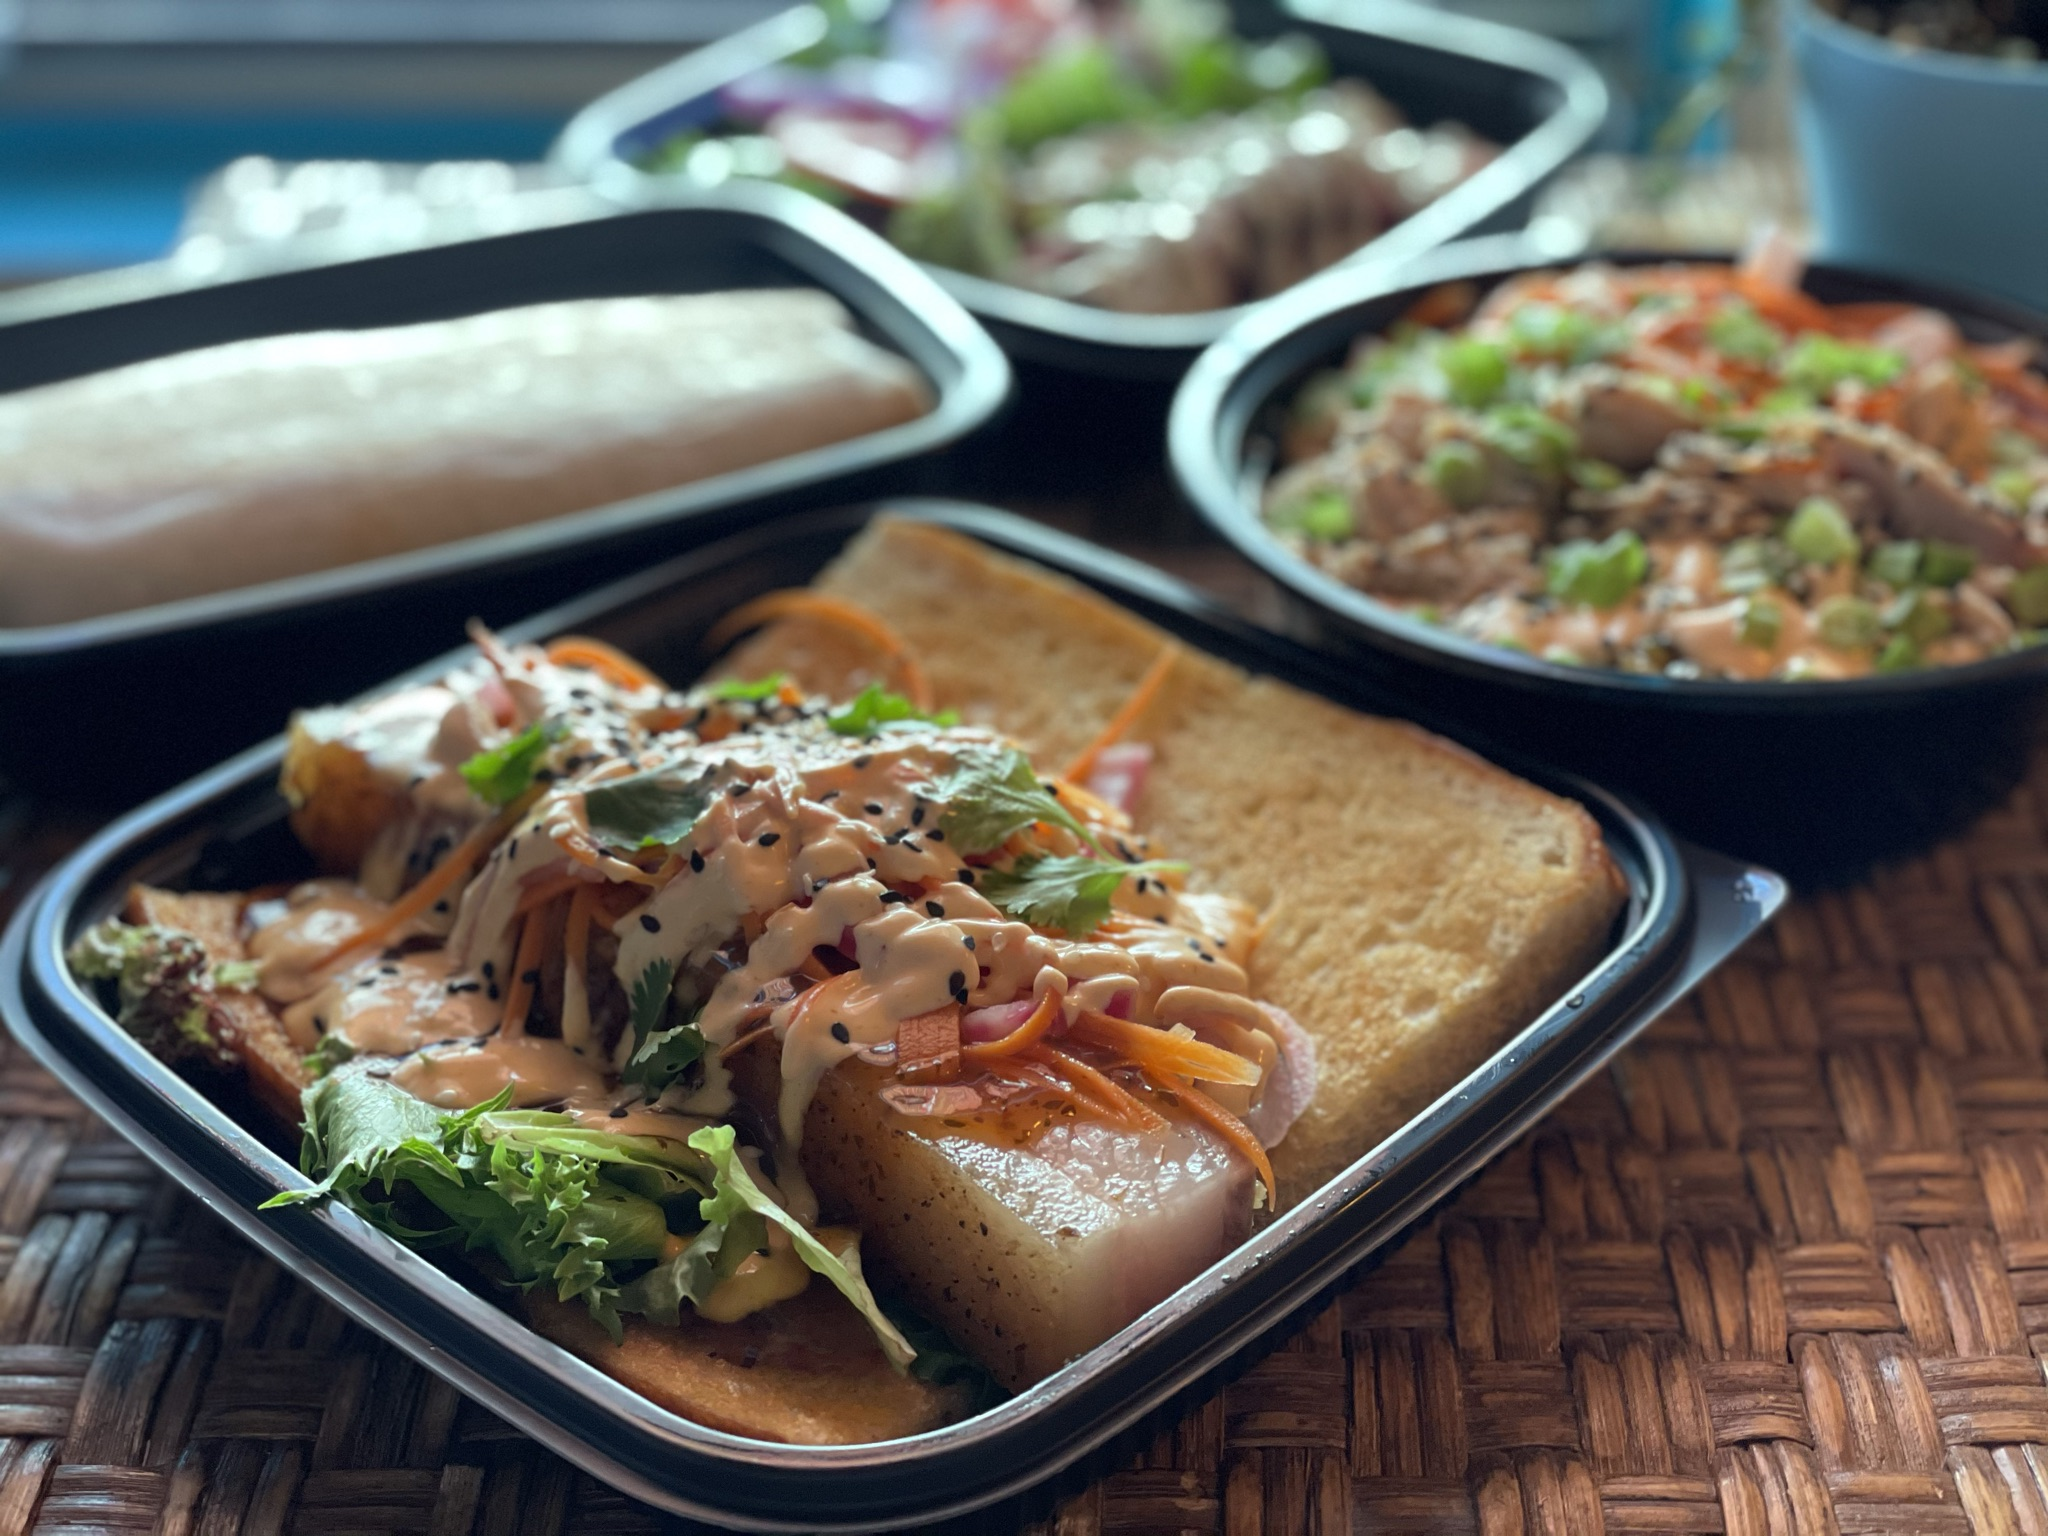 A photo of a black plastic tray of Mexican food with other dishes in the background.